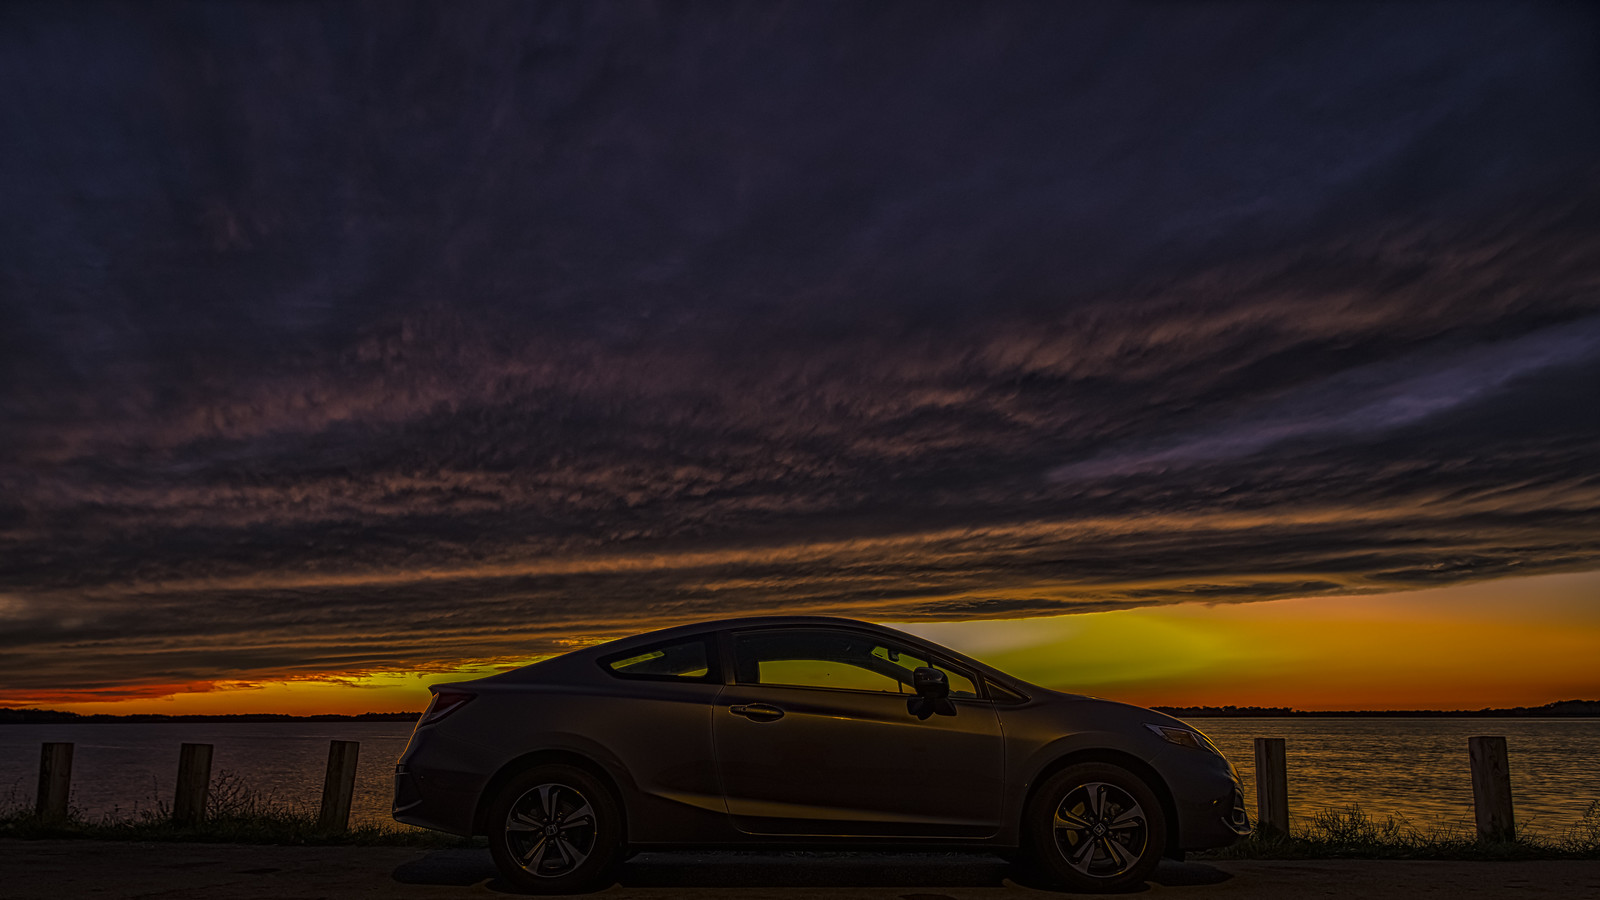 My Civic, RICOH PENTAX KP, HD PENTAX-DA 15mm F4 ED AL Limited